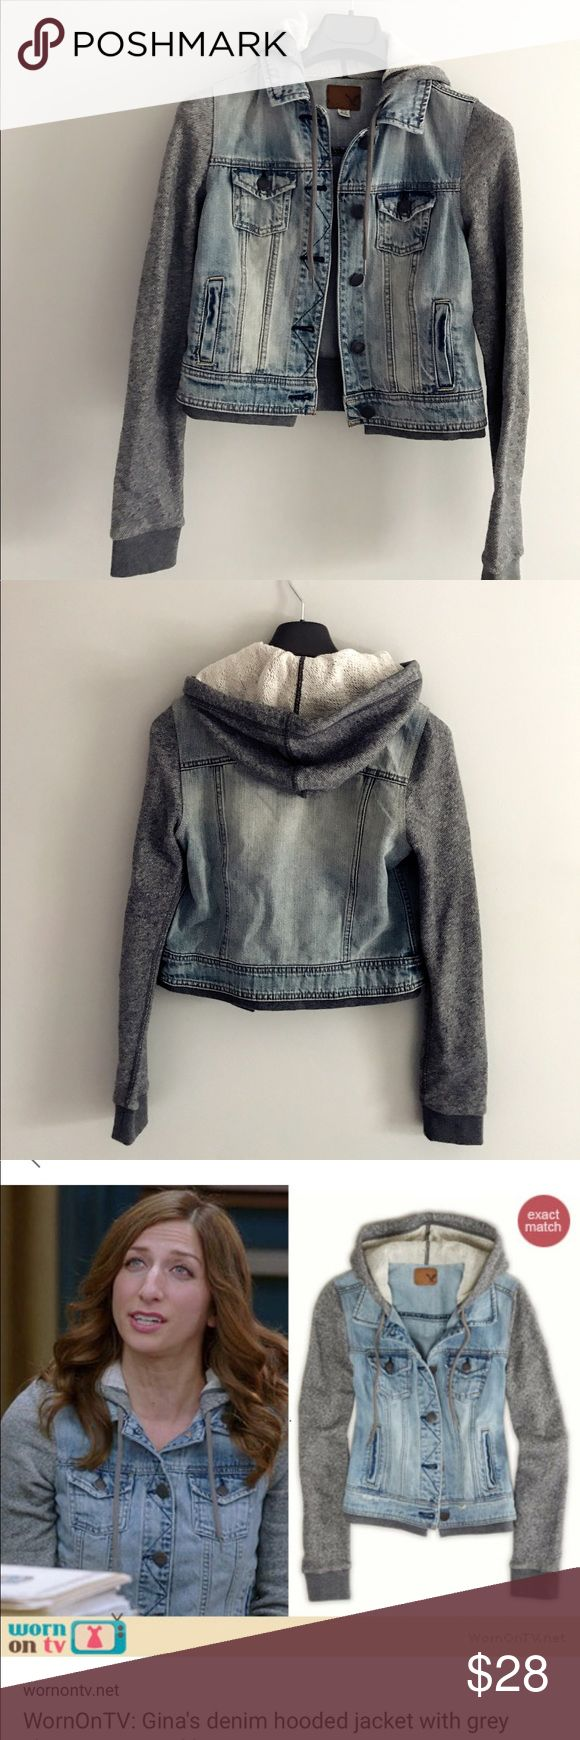 American Eagle Outfitter hoodie jacket Size S Really cute and in trend hoodie jacket! Effortless chic style.  Good for spring/fall weather.  So popular that it sold out before on sale American Eagle Outfitters Jackets & Coats Jean Jackets #americaneagleoutfitters